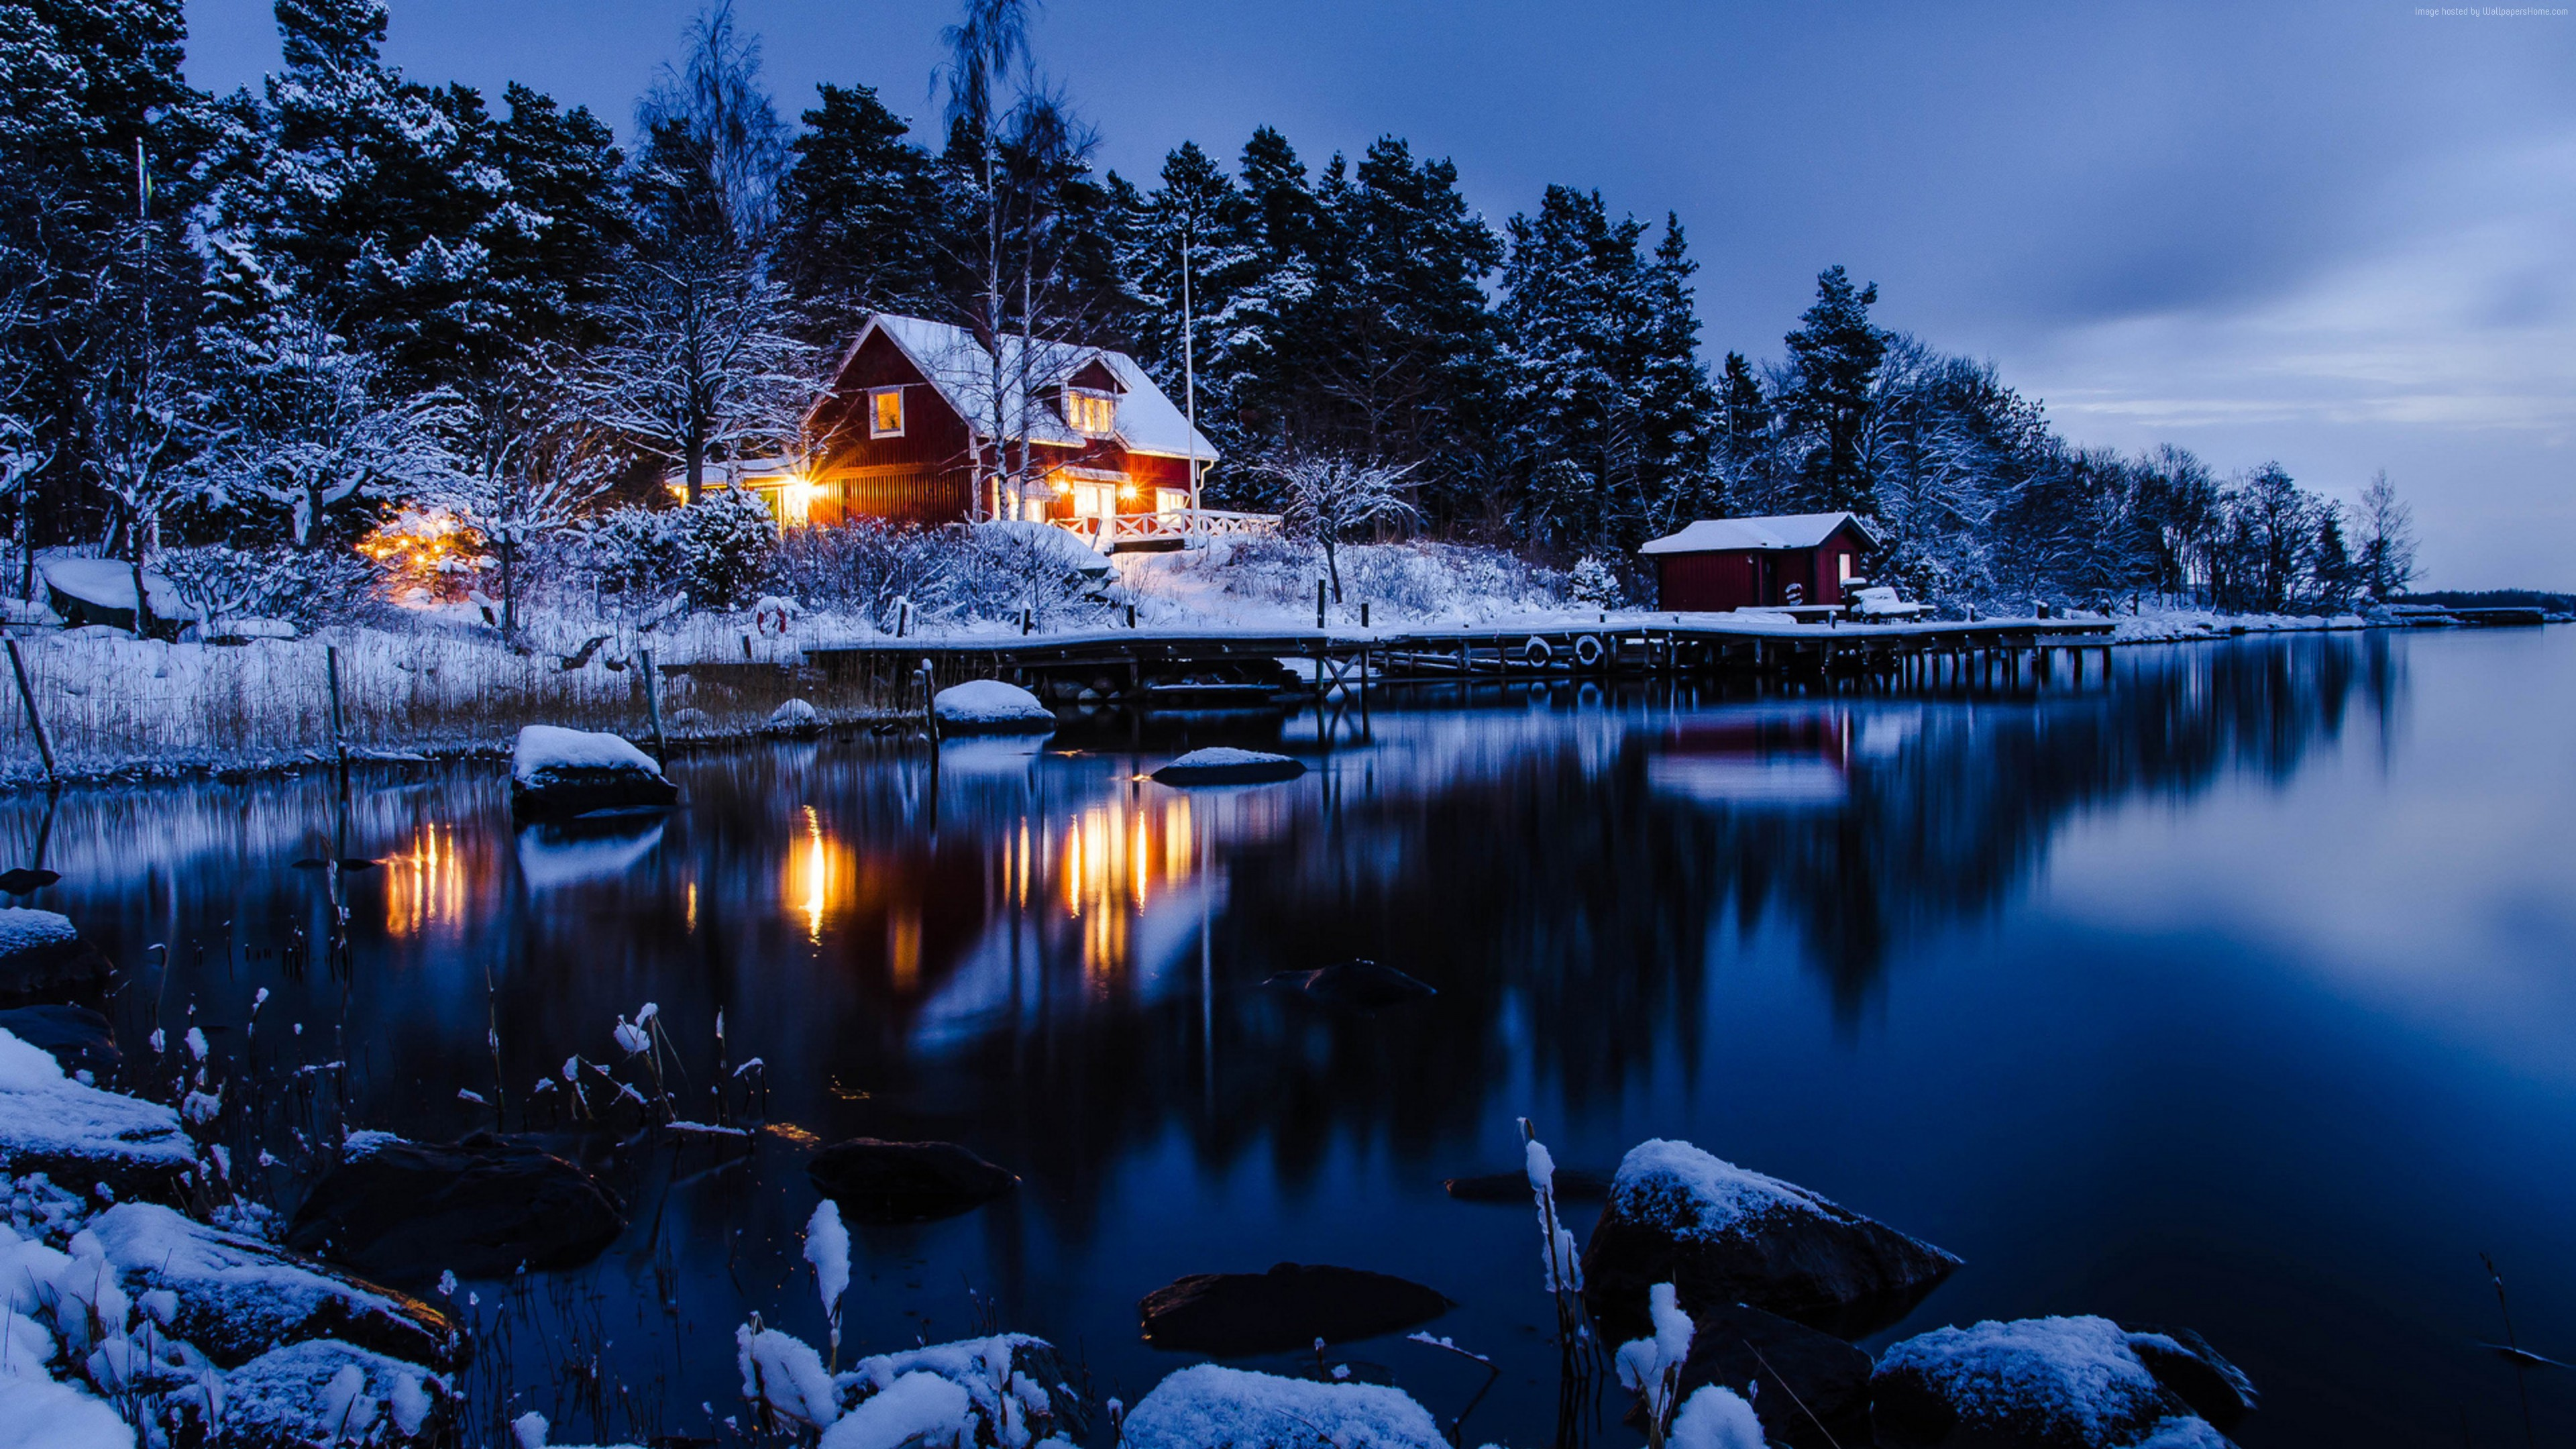 Wallpaper house, lake, trees, winter, 5k, Nature